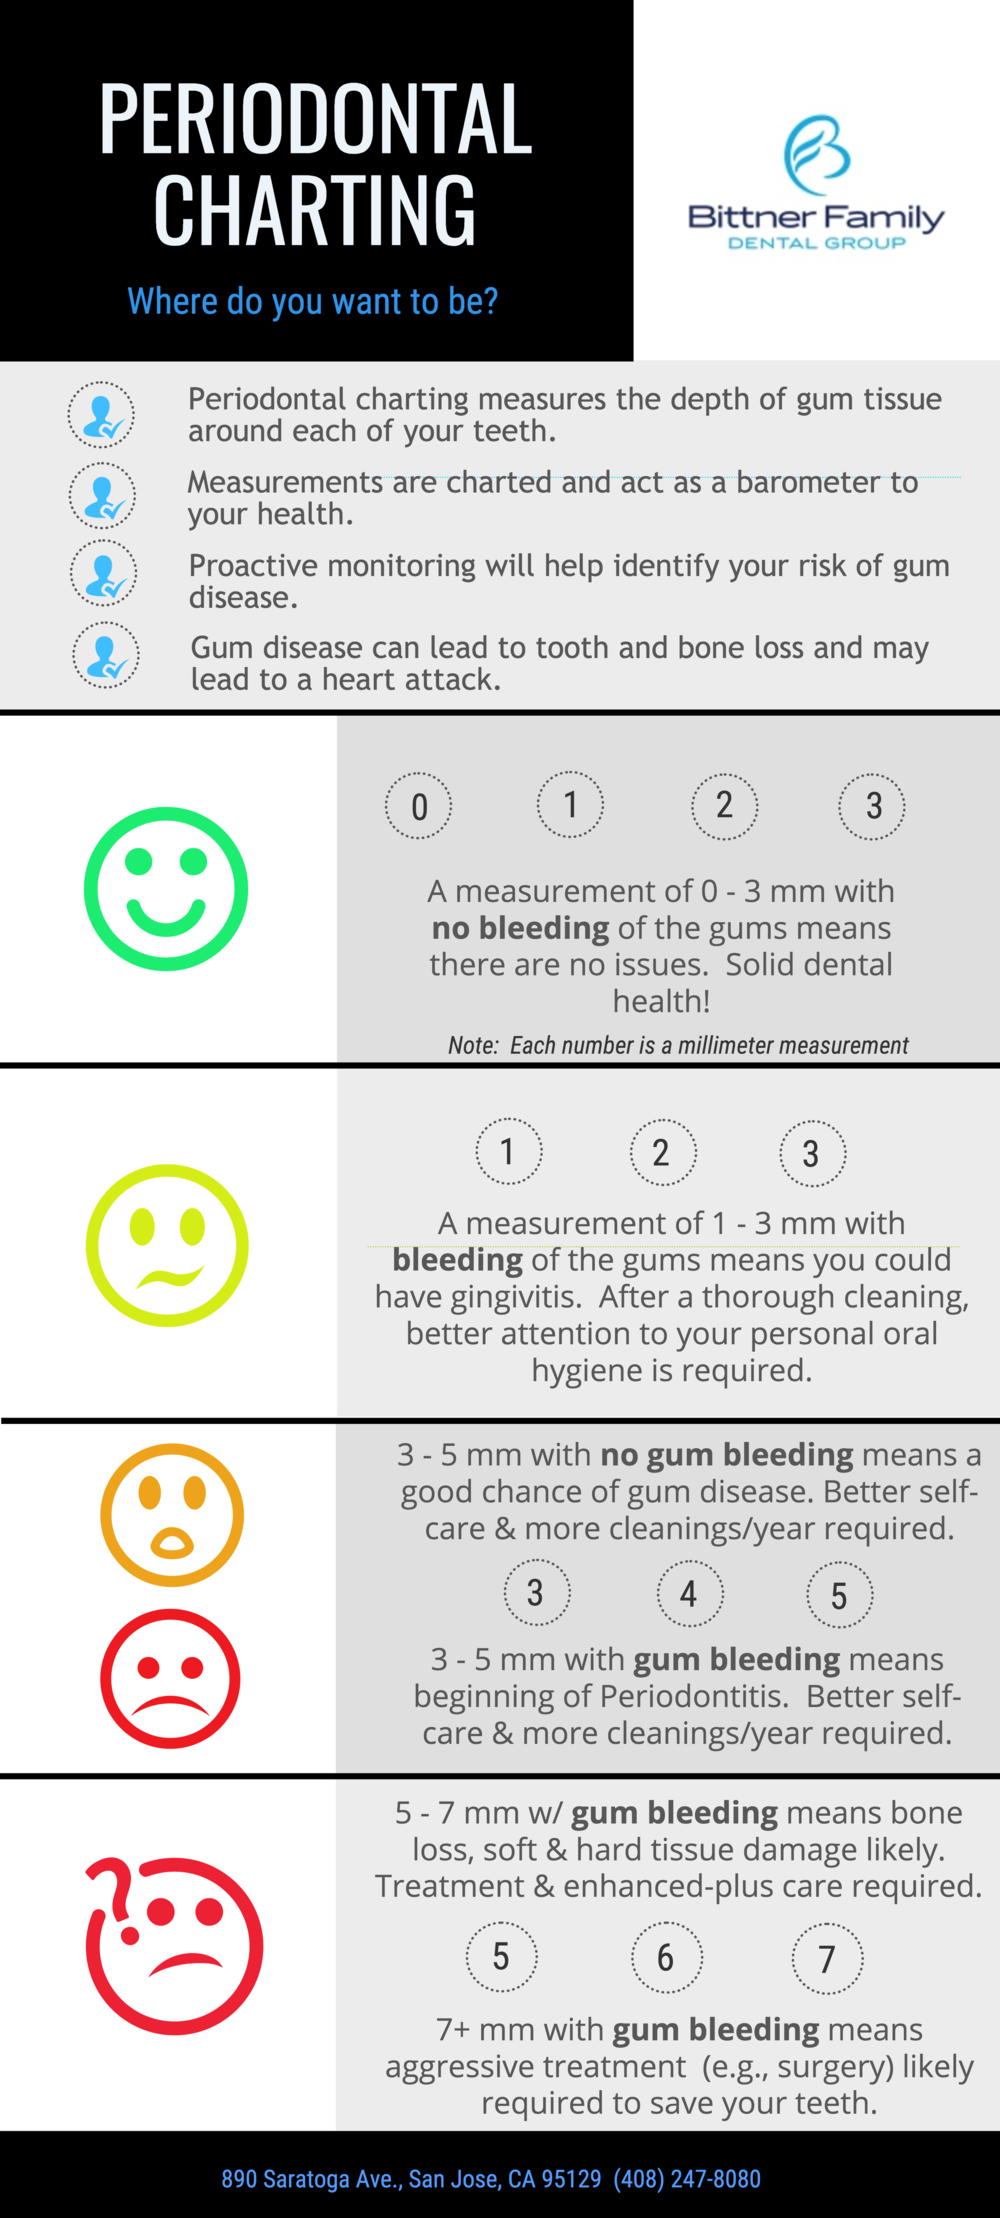 LEarn about Periodontal Charting